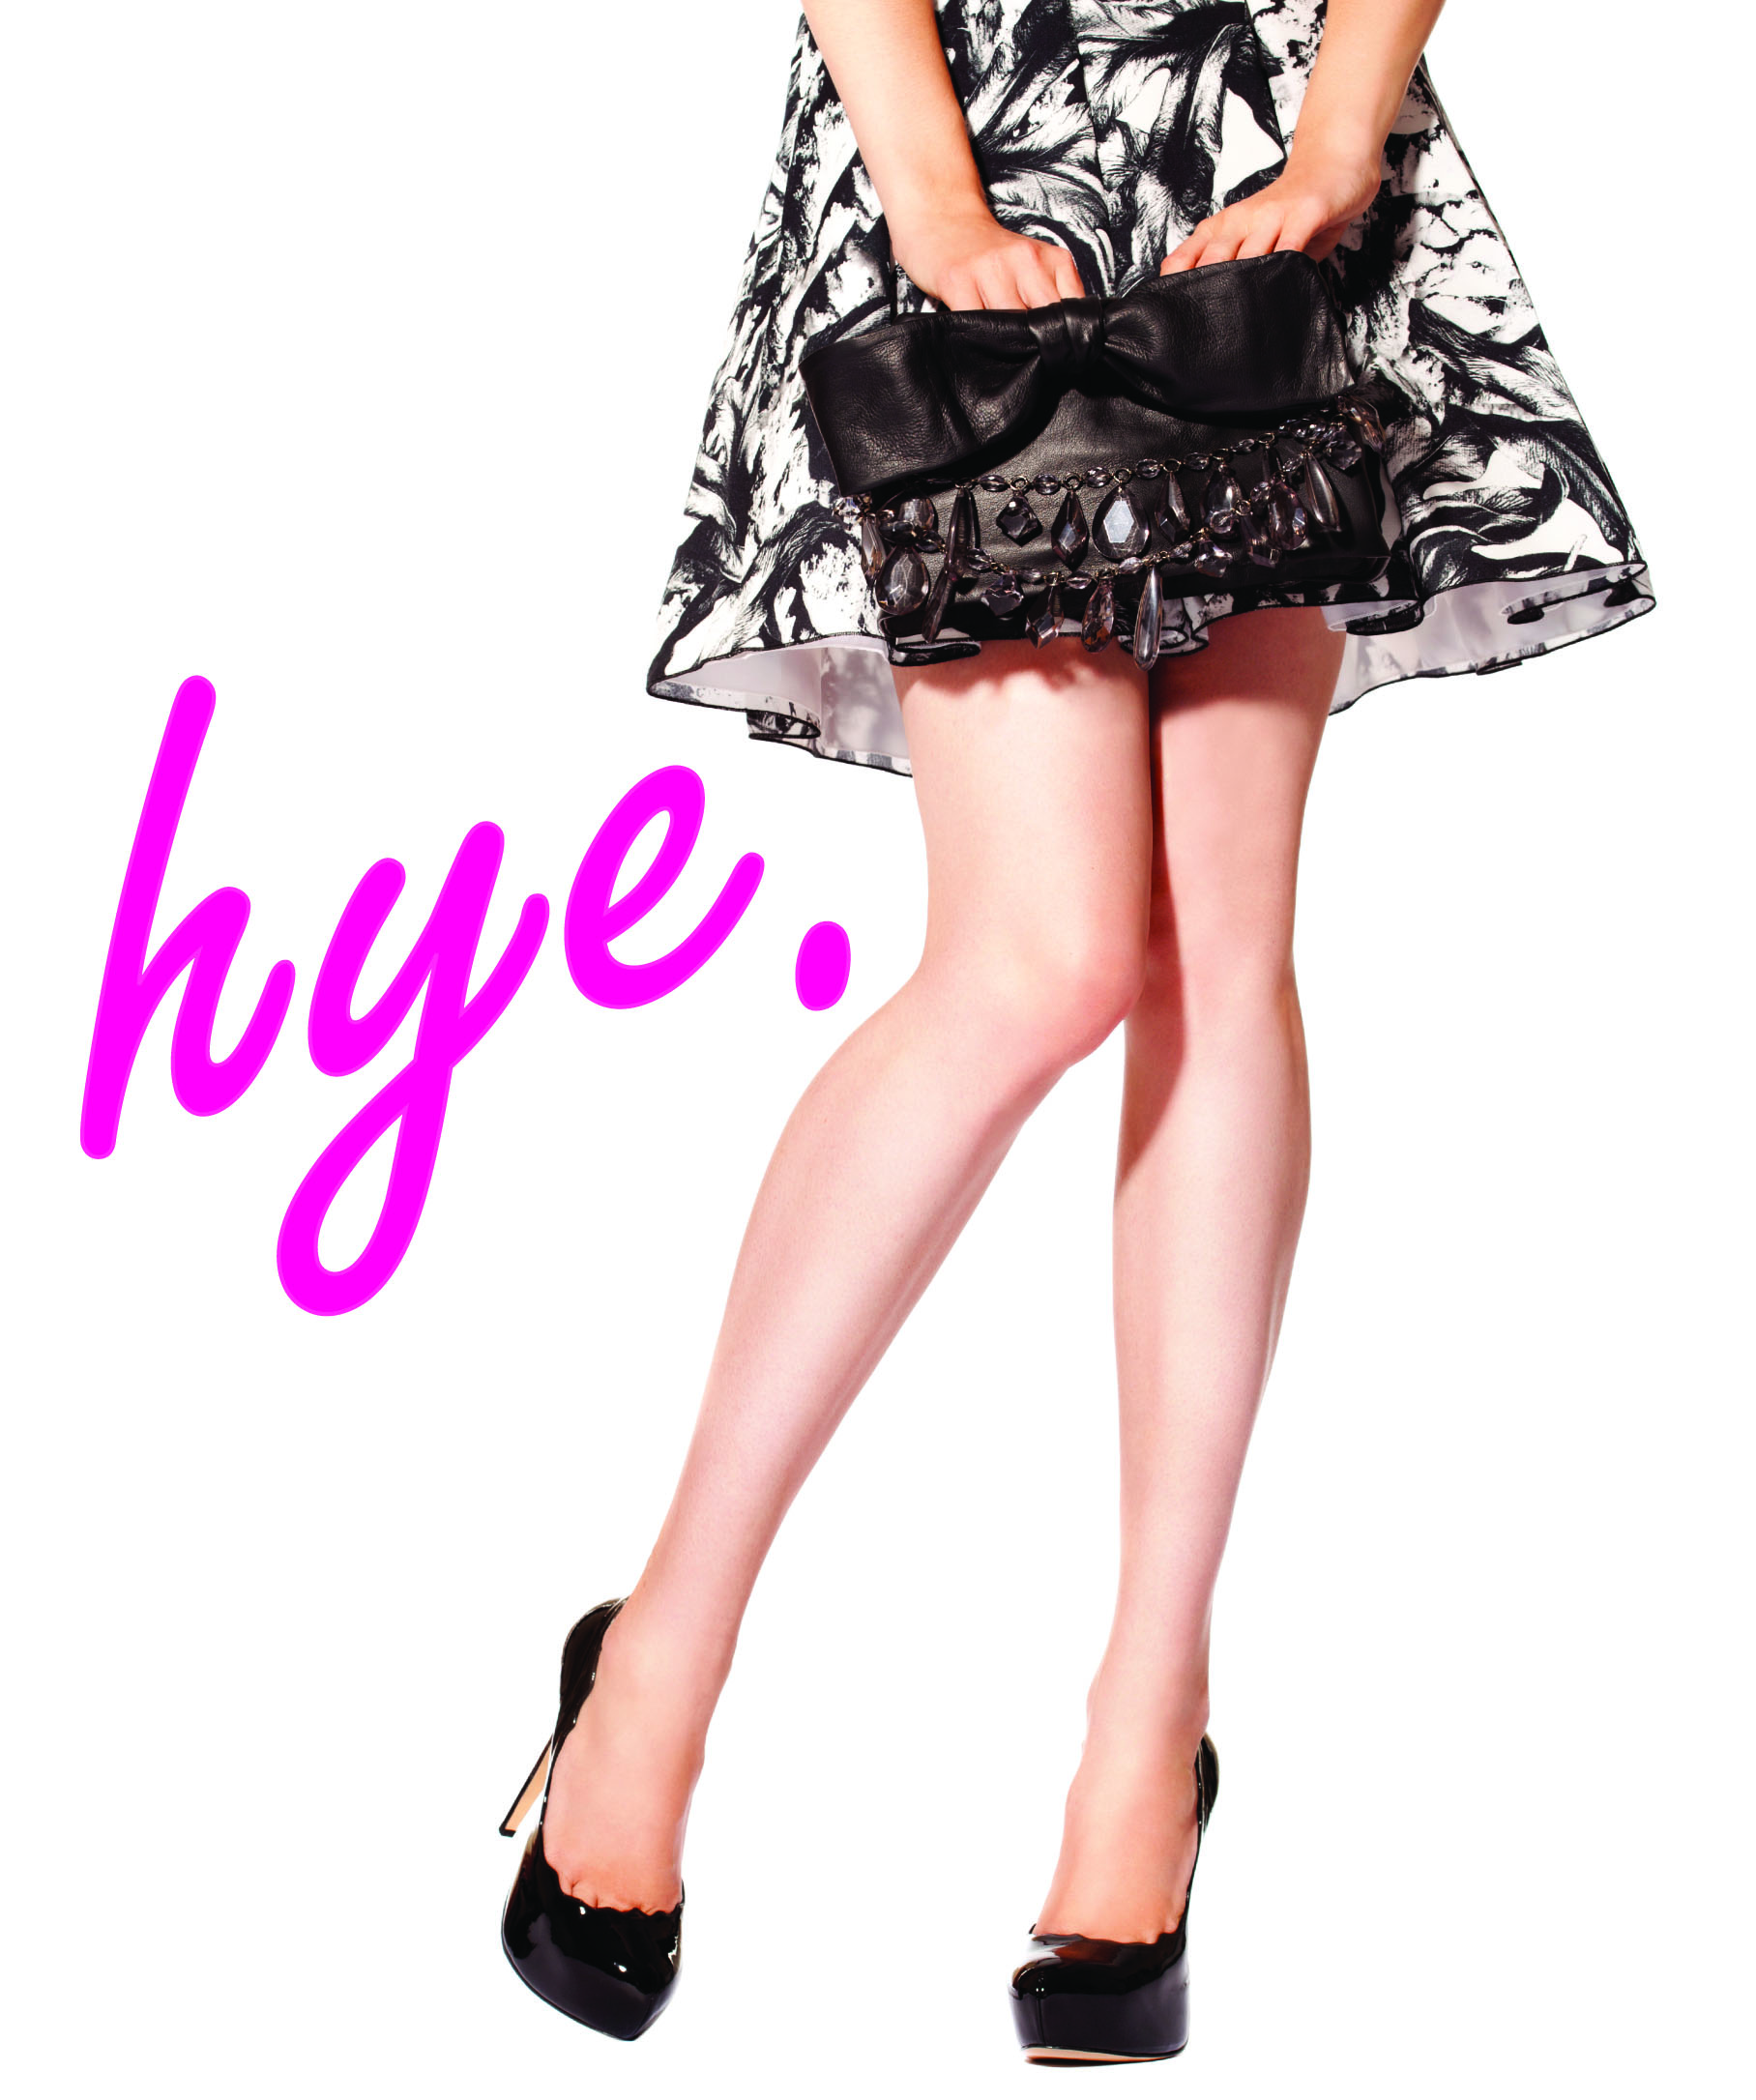 hye-fashion-legs-fb-profile-pic.jpg